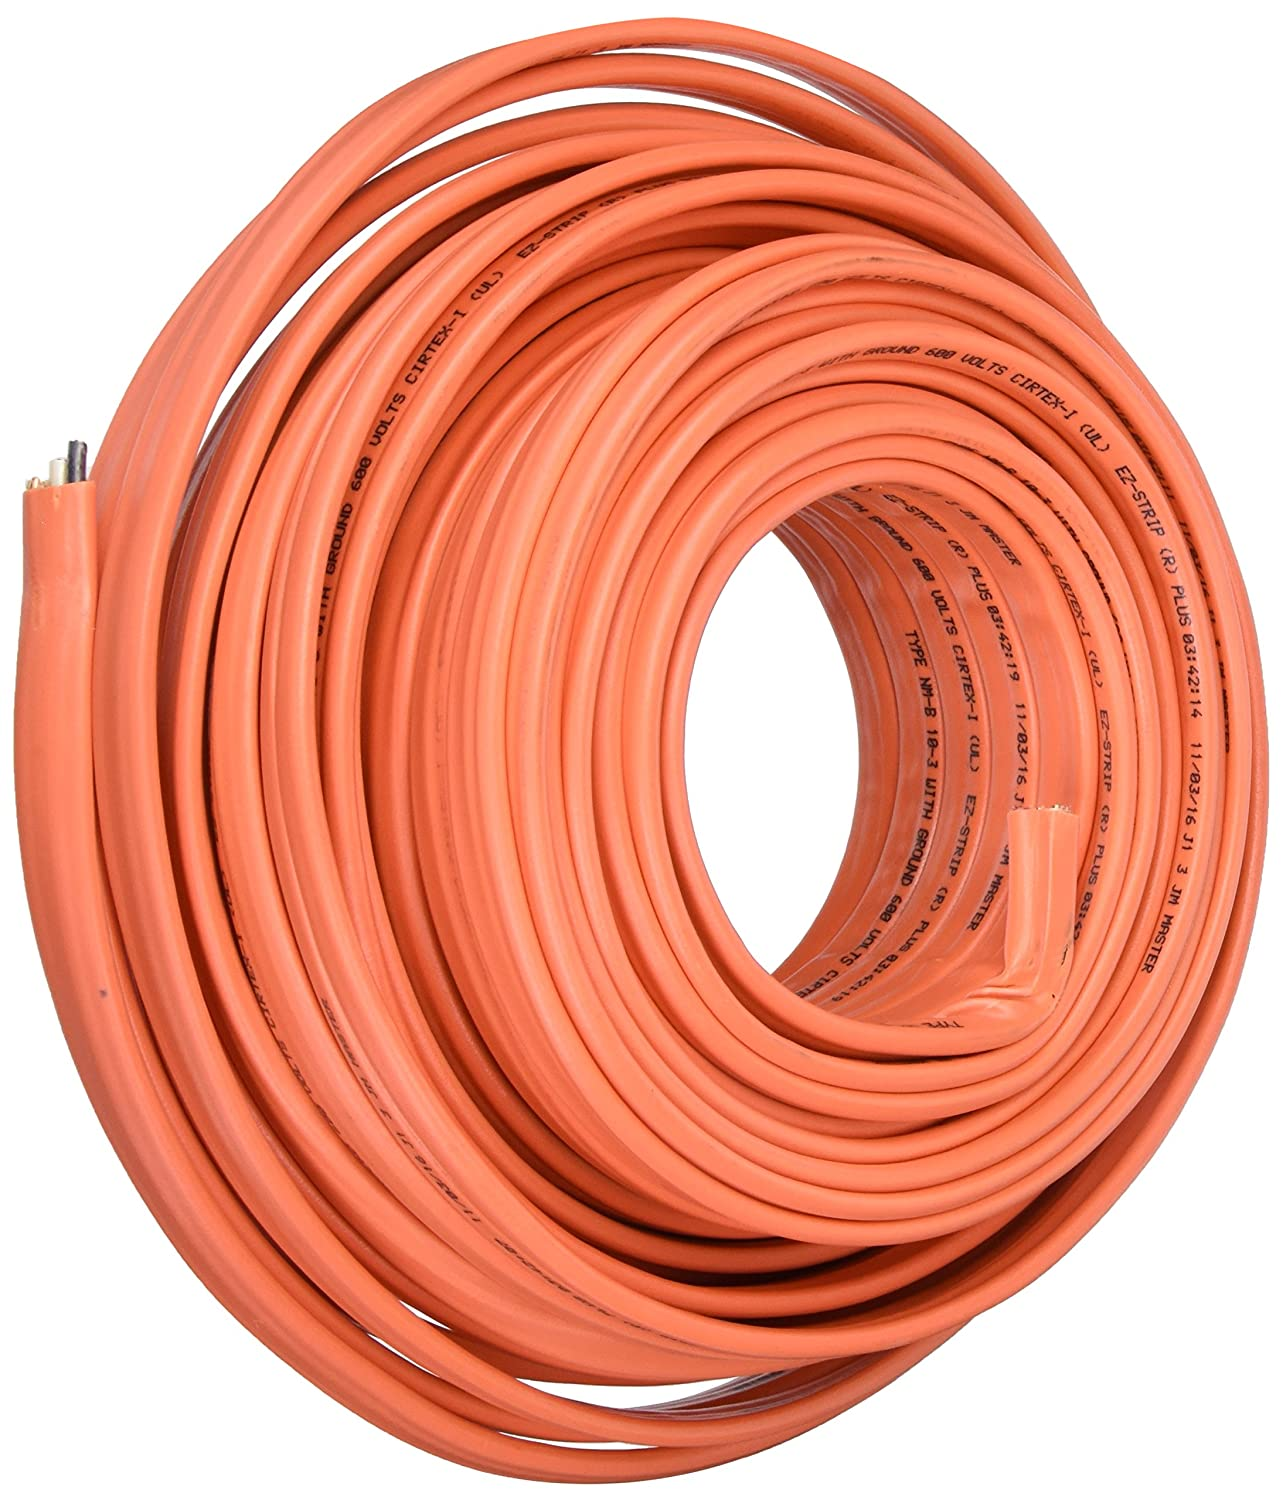 Cerrowire 147-1803CR 100-Feet 10/3 NM-B Solid with Ground Wire ...